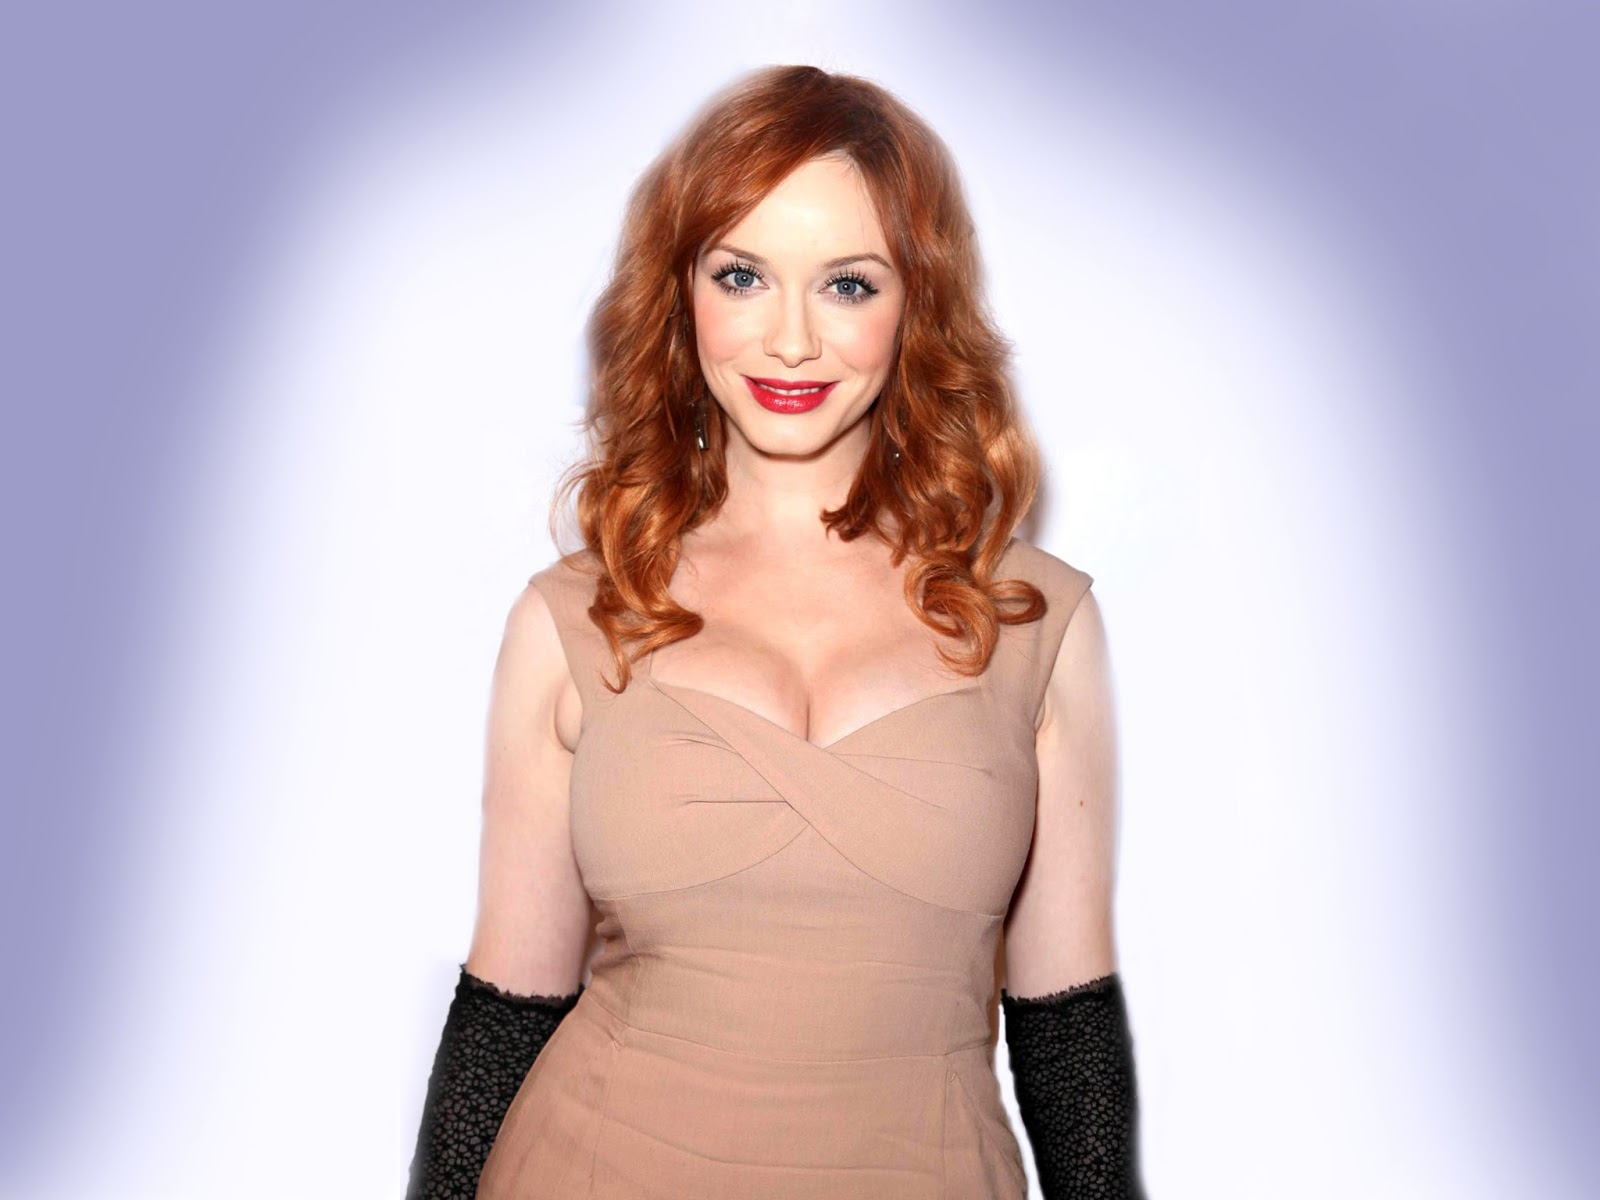 Celebrity Pics Christina Hendricks Free Wallpapers